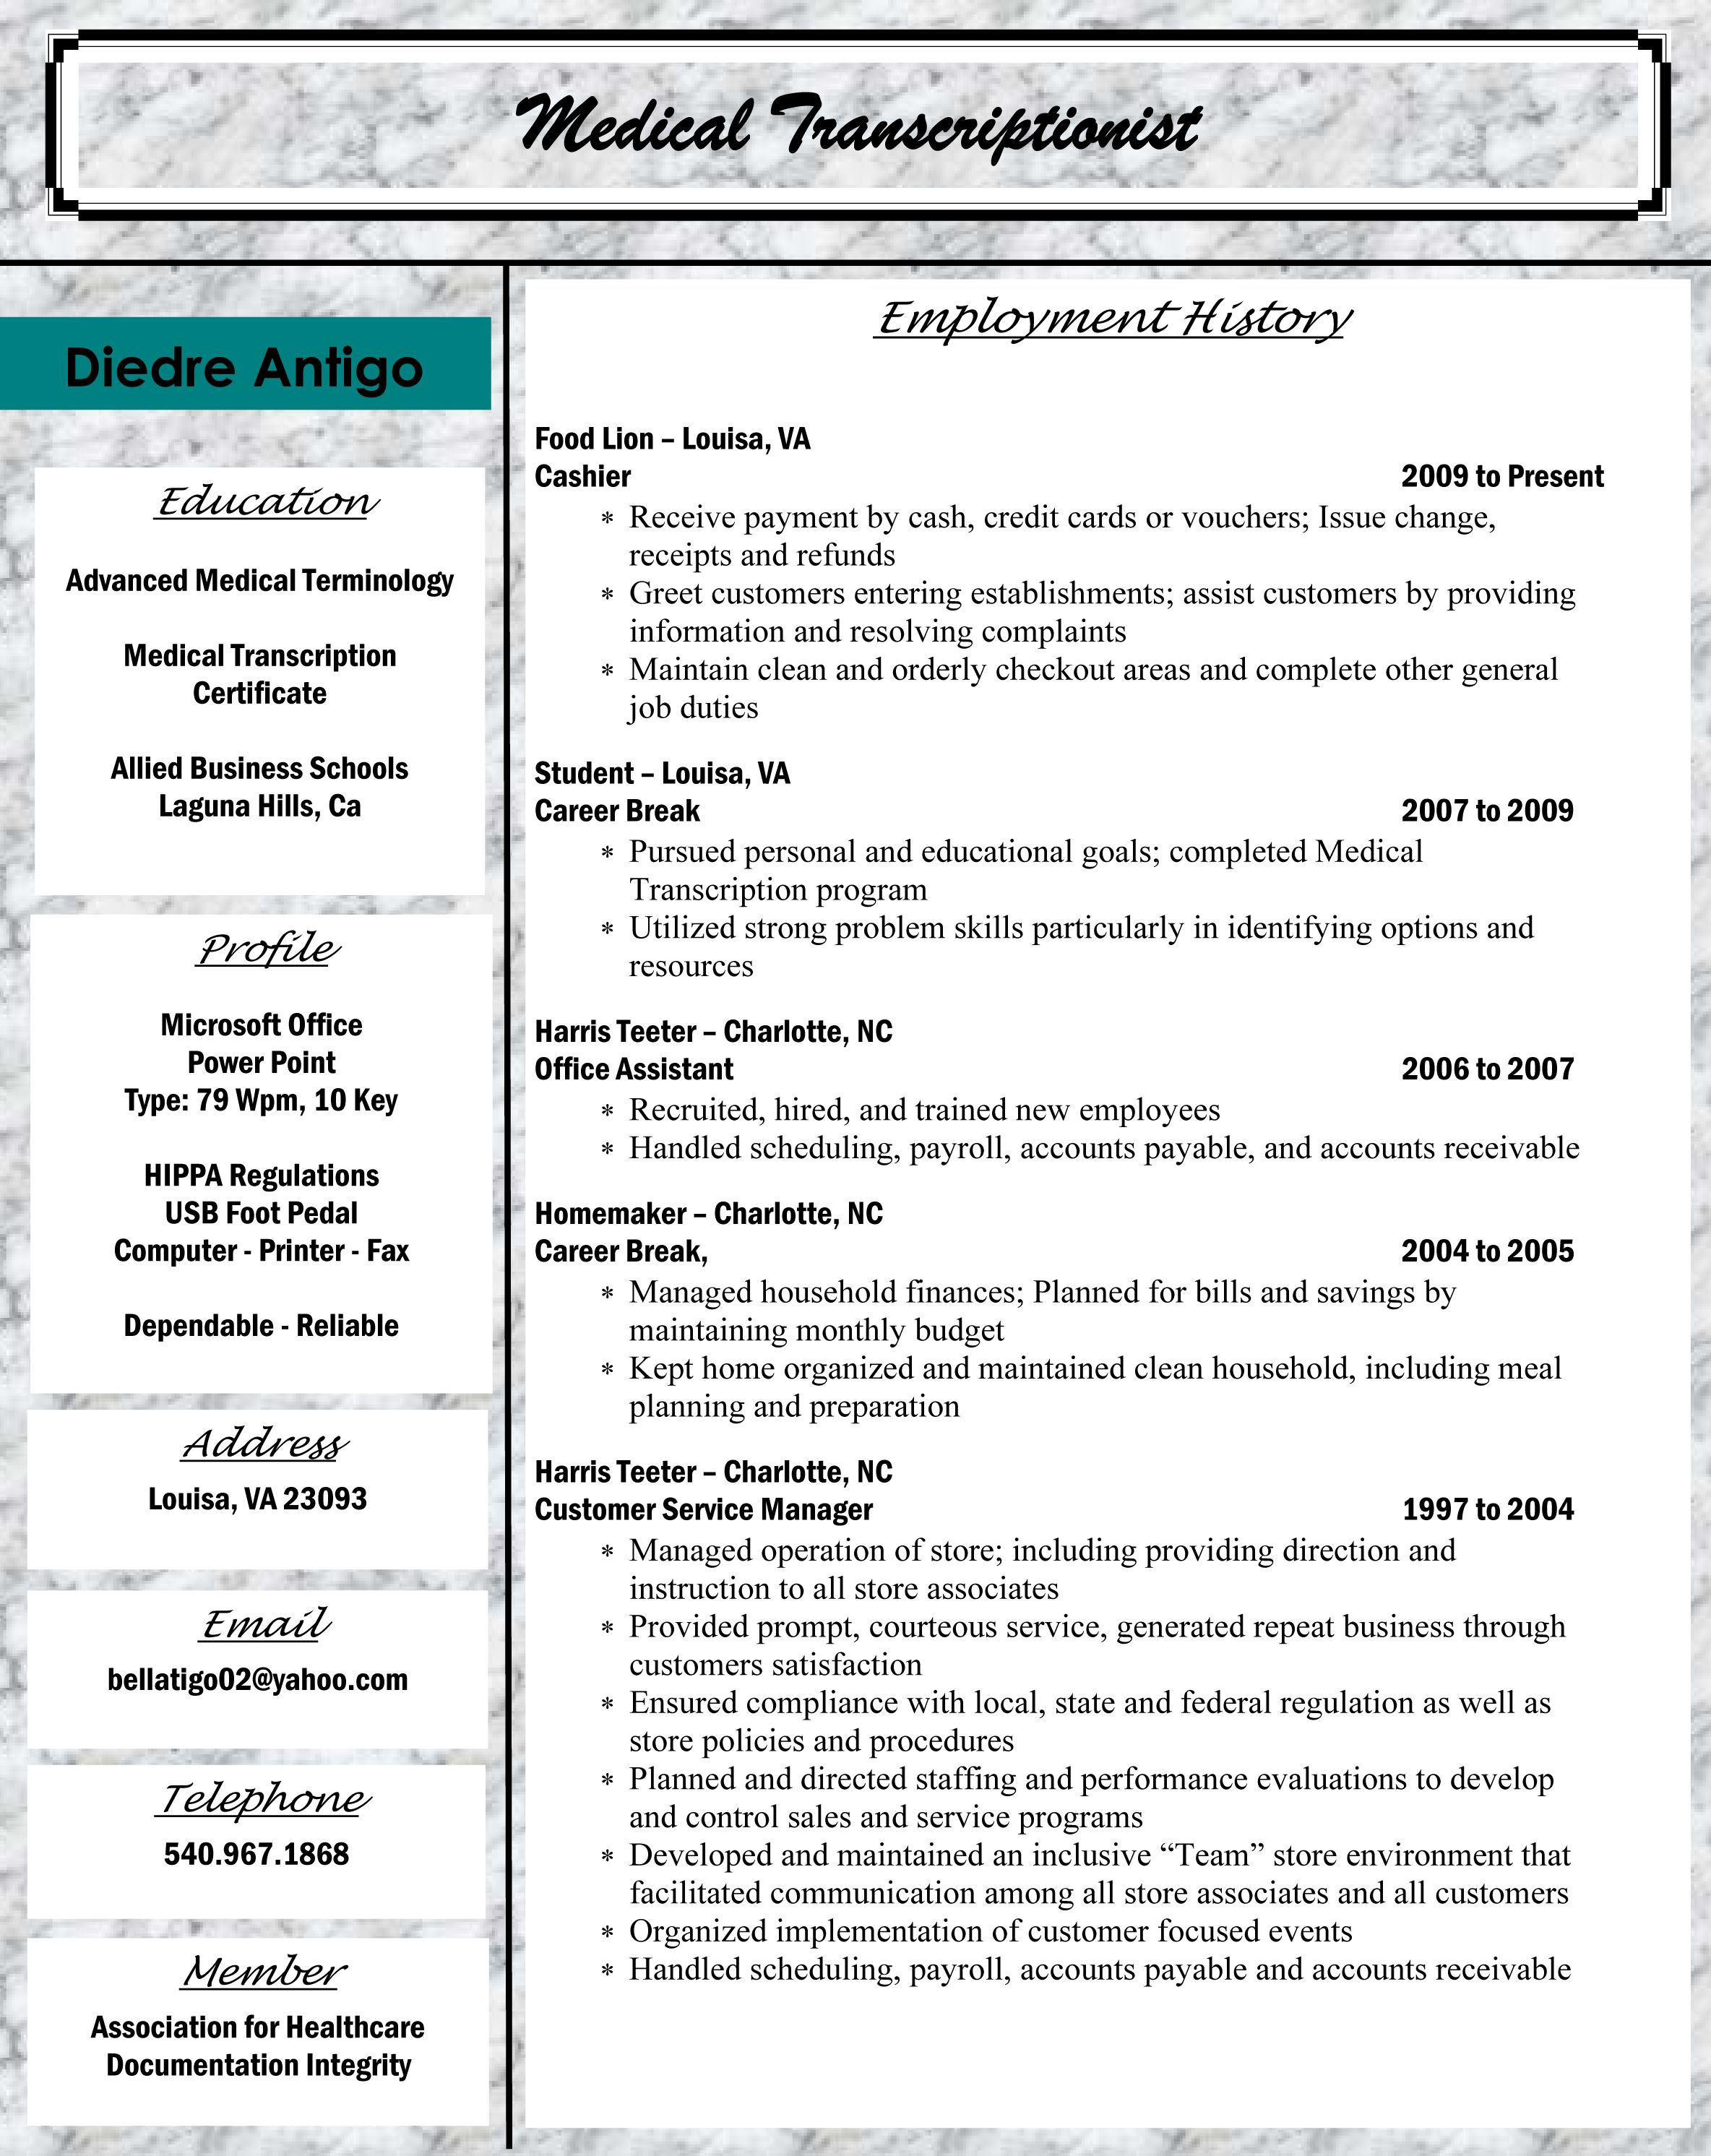 allied student diedre antigo  medical transcriptionist  transcription  medical  resume